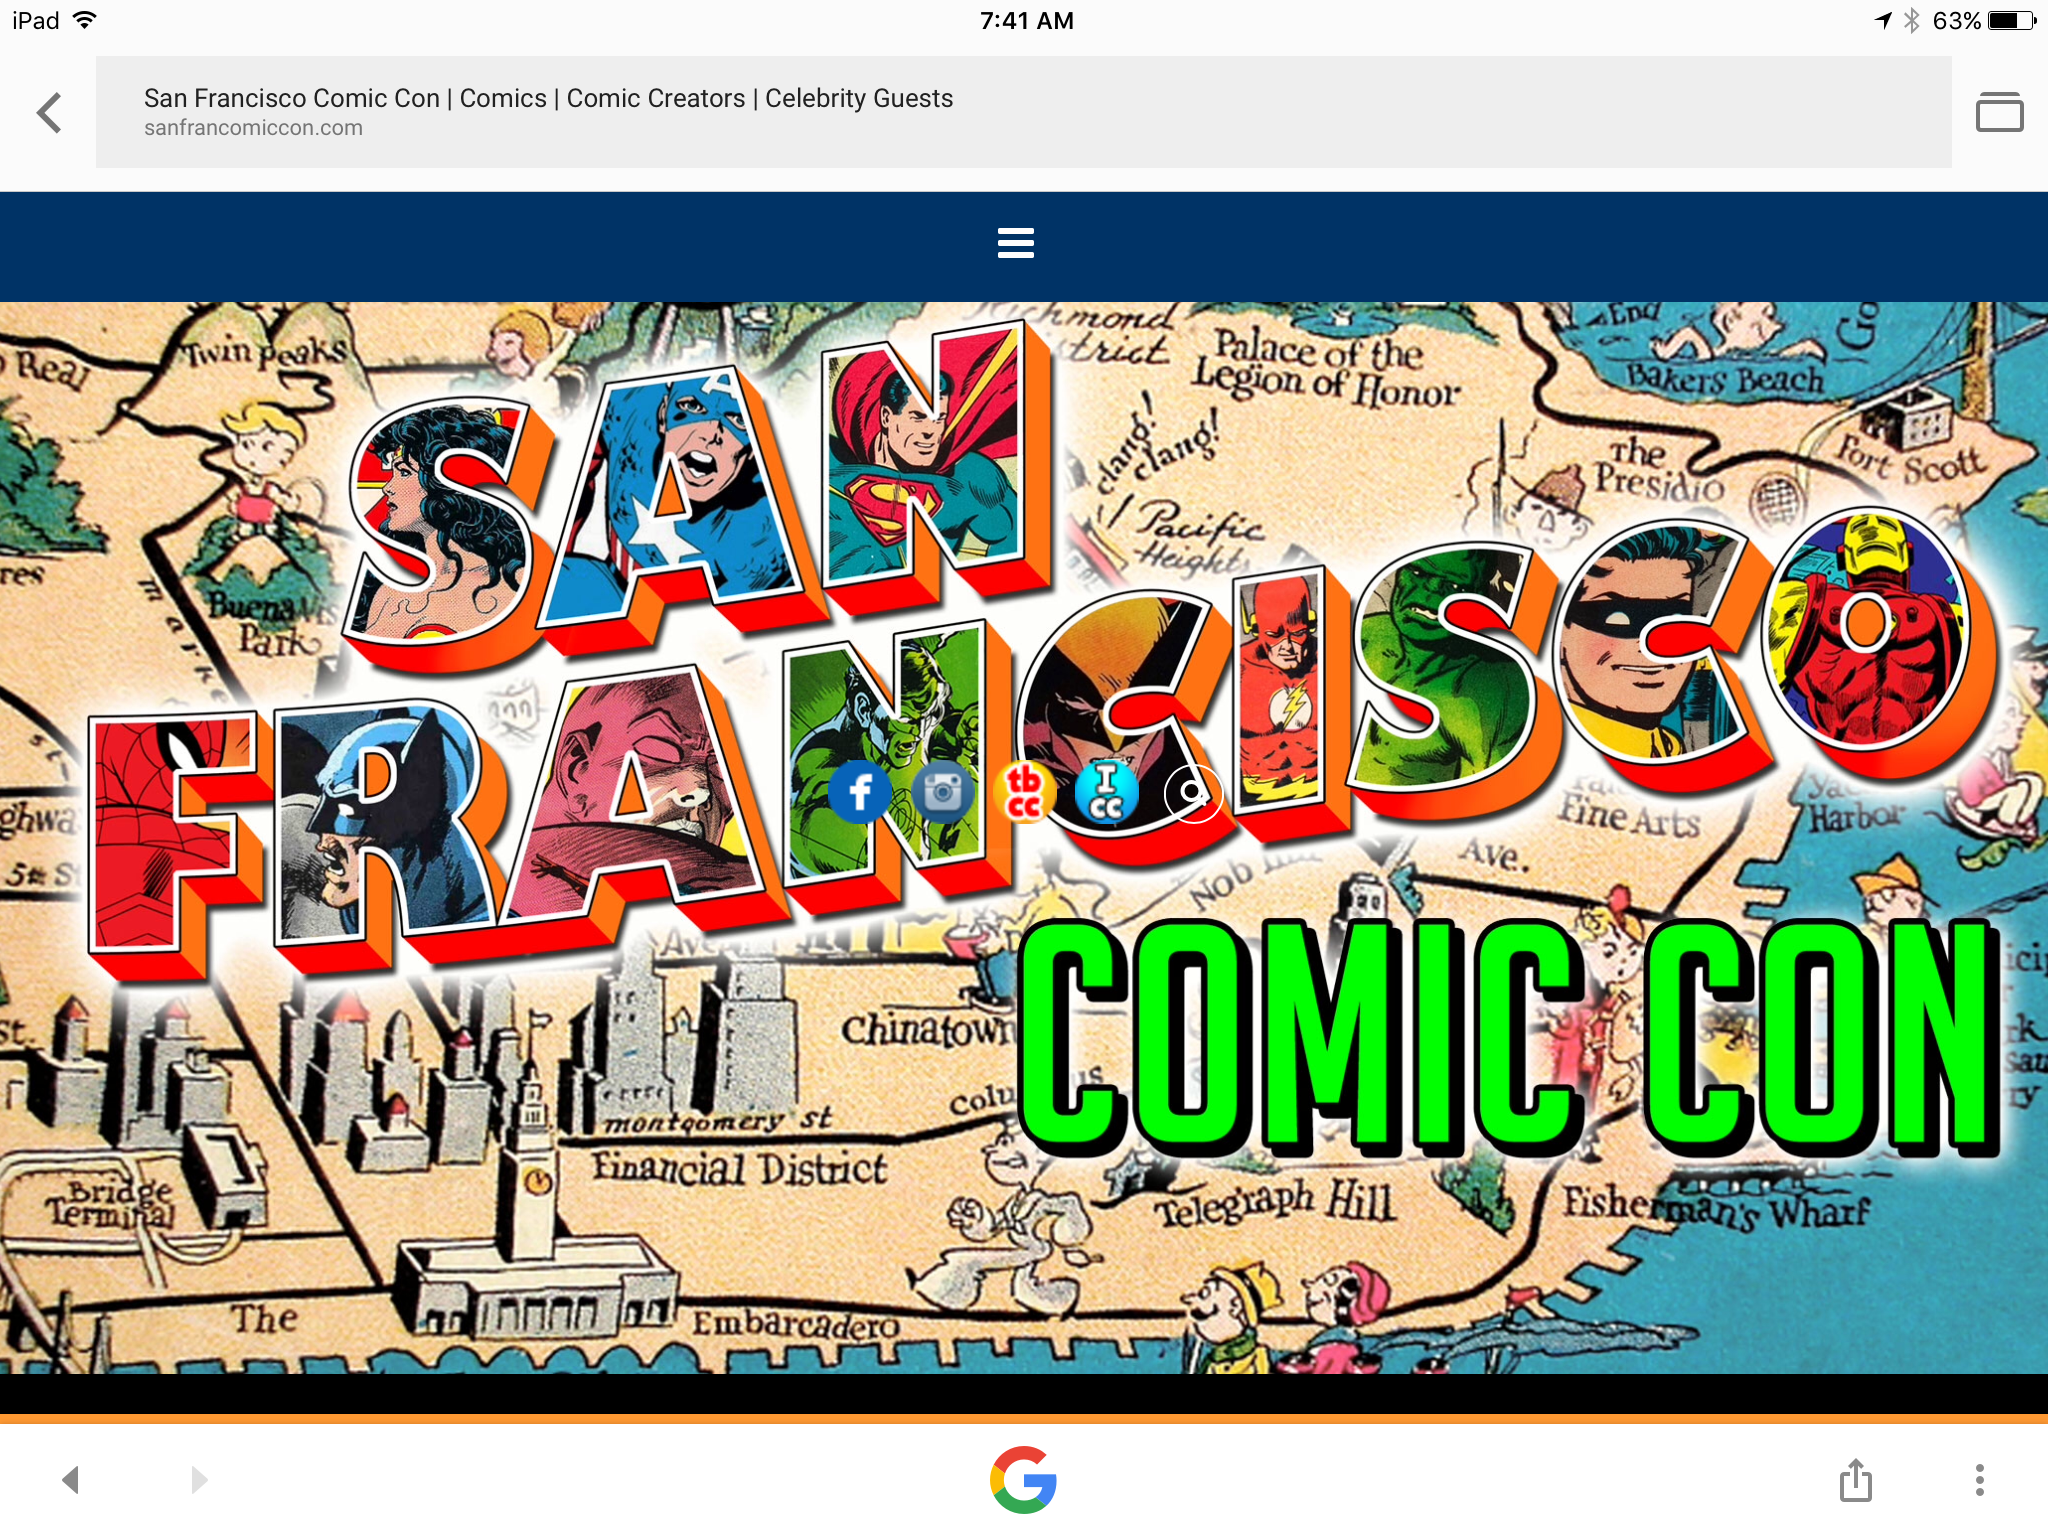 San Francisco Comic Con: Sept. 1-3